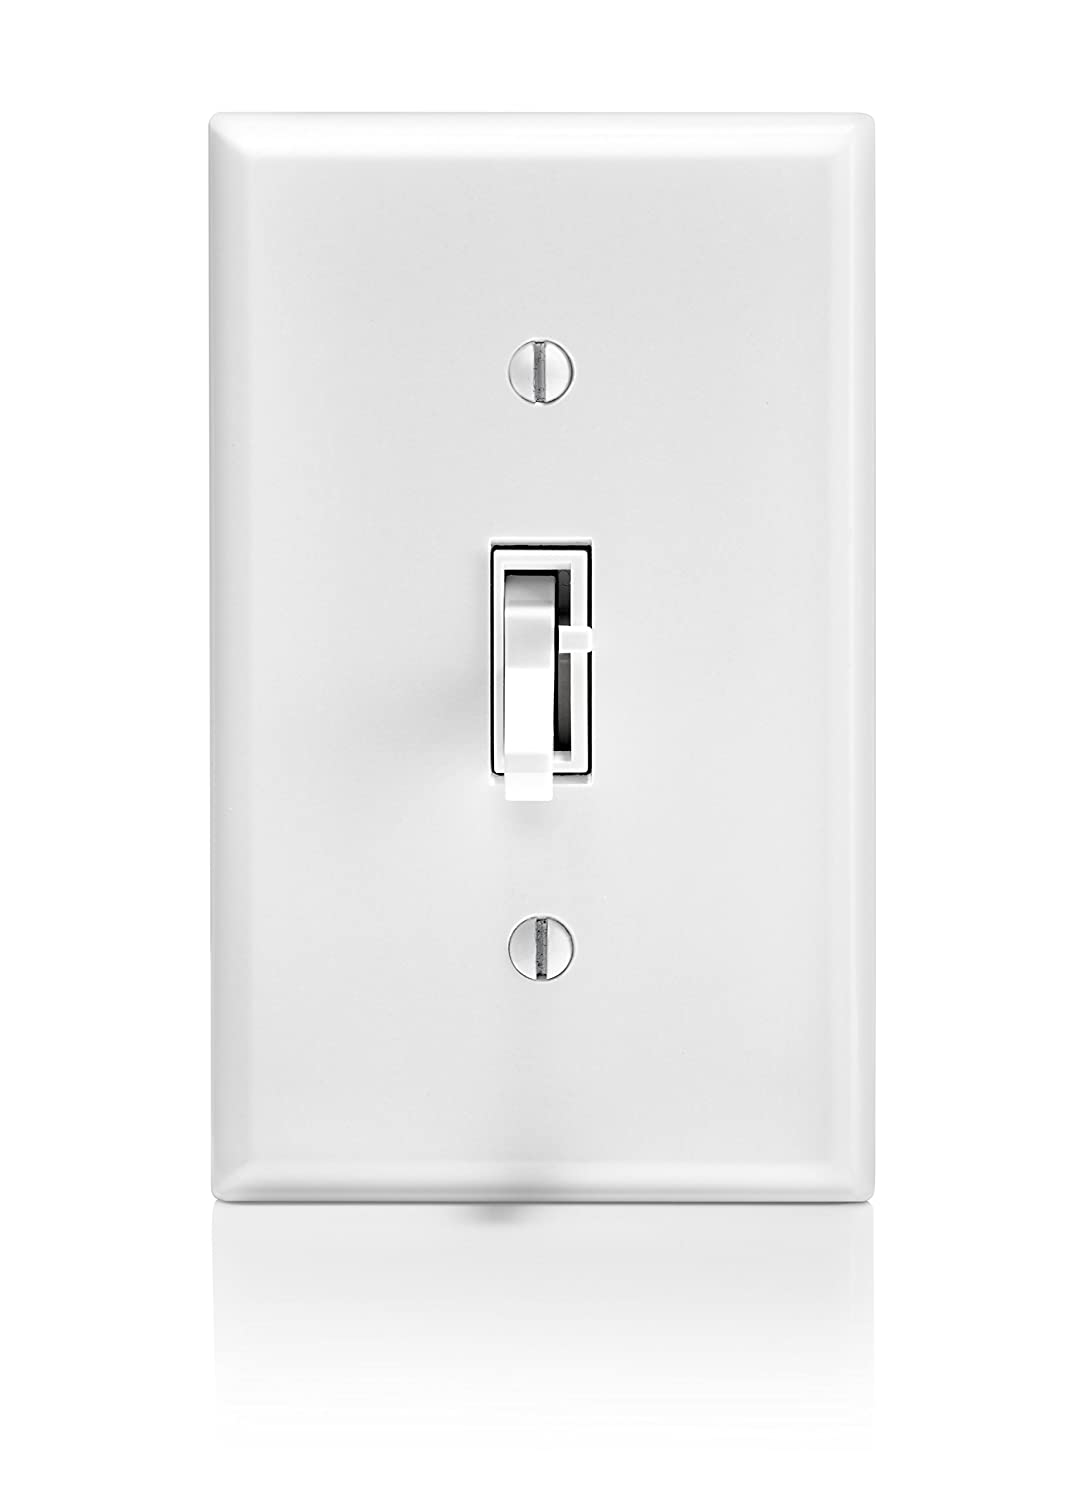 600-Watt Incandescent and Halogen for Single Pole or 3-way with locator light White 300-Watt Dimmable LED and CFL Leviton TSL06-1LW Toggle Slide Universal Dimmer